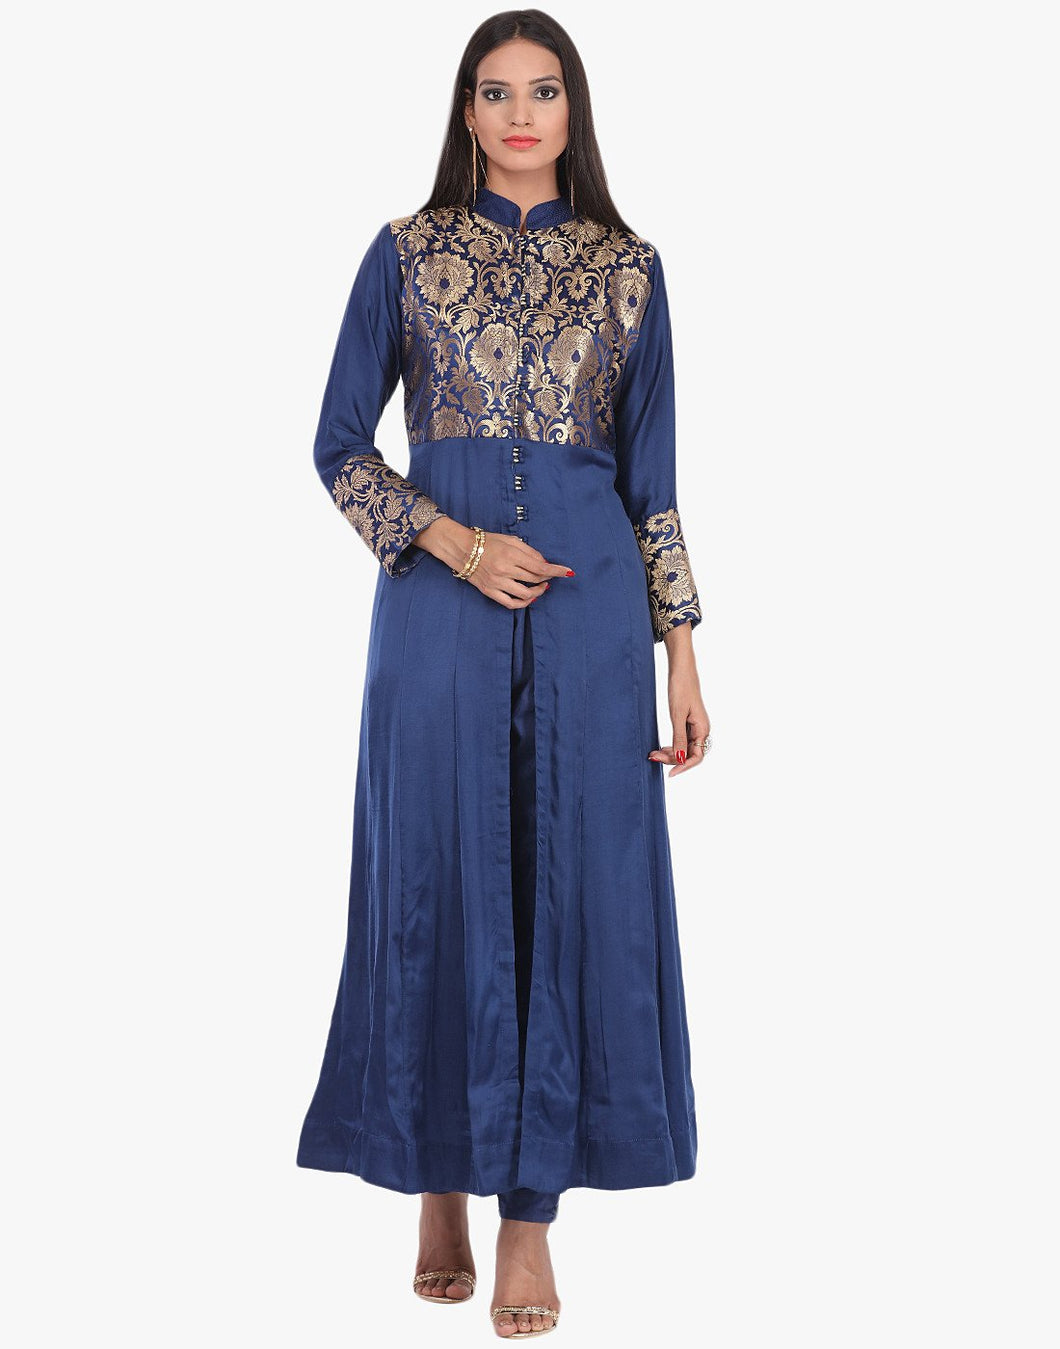 Semi-Stitched Floral Brocade Cotton A-line Suit With Pants By Meena Bazaar